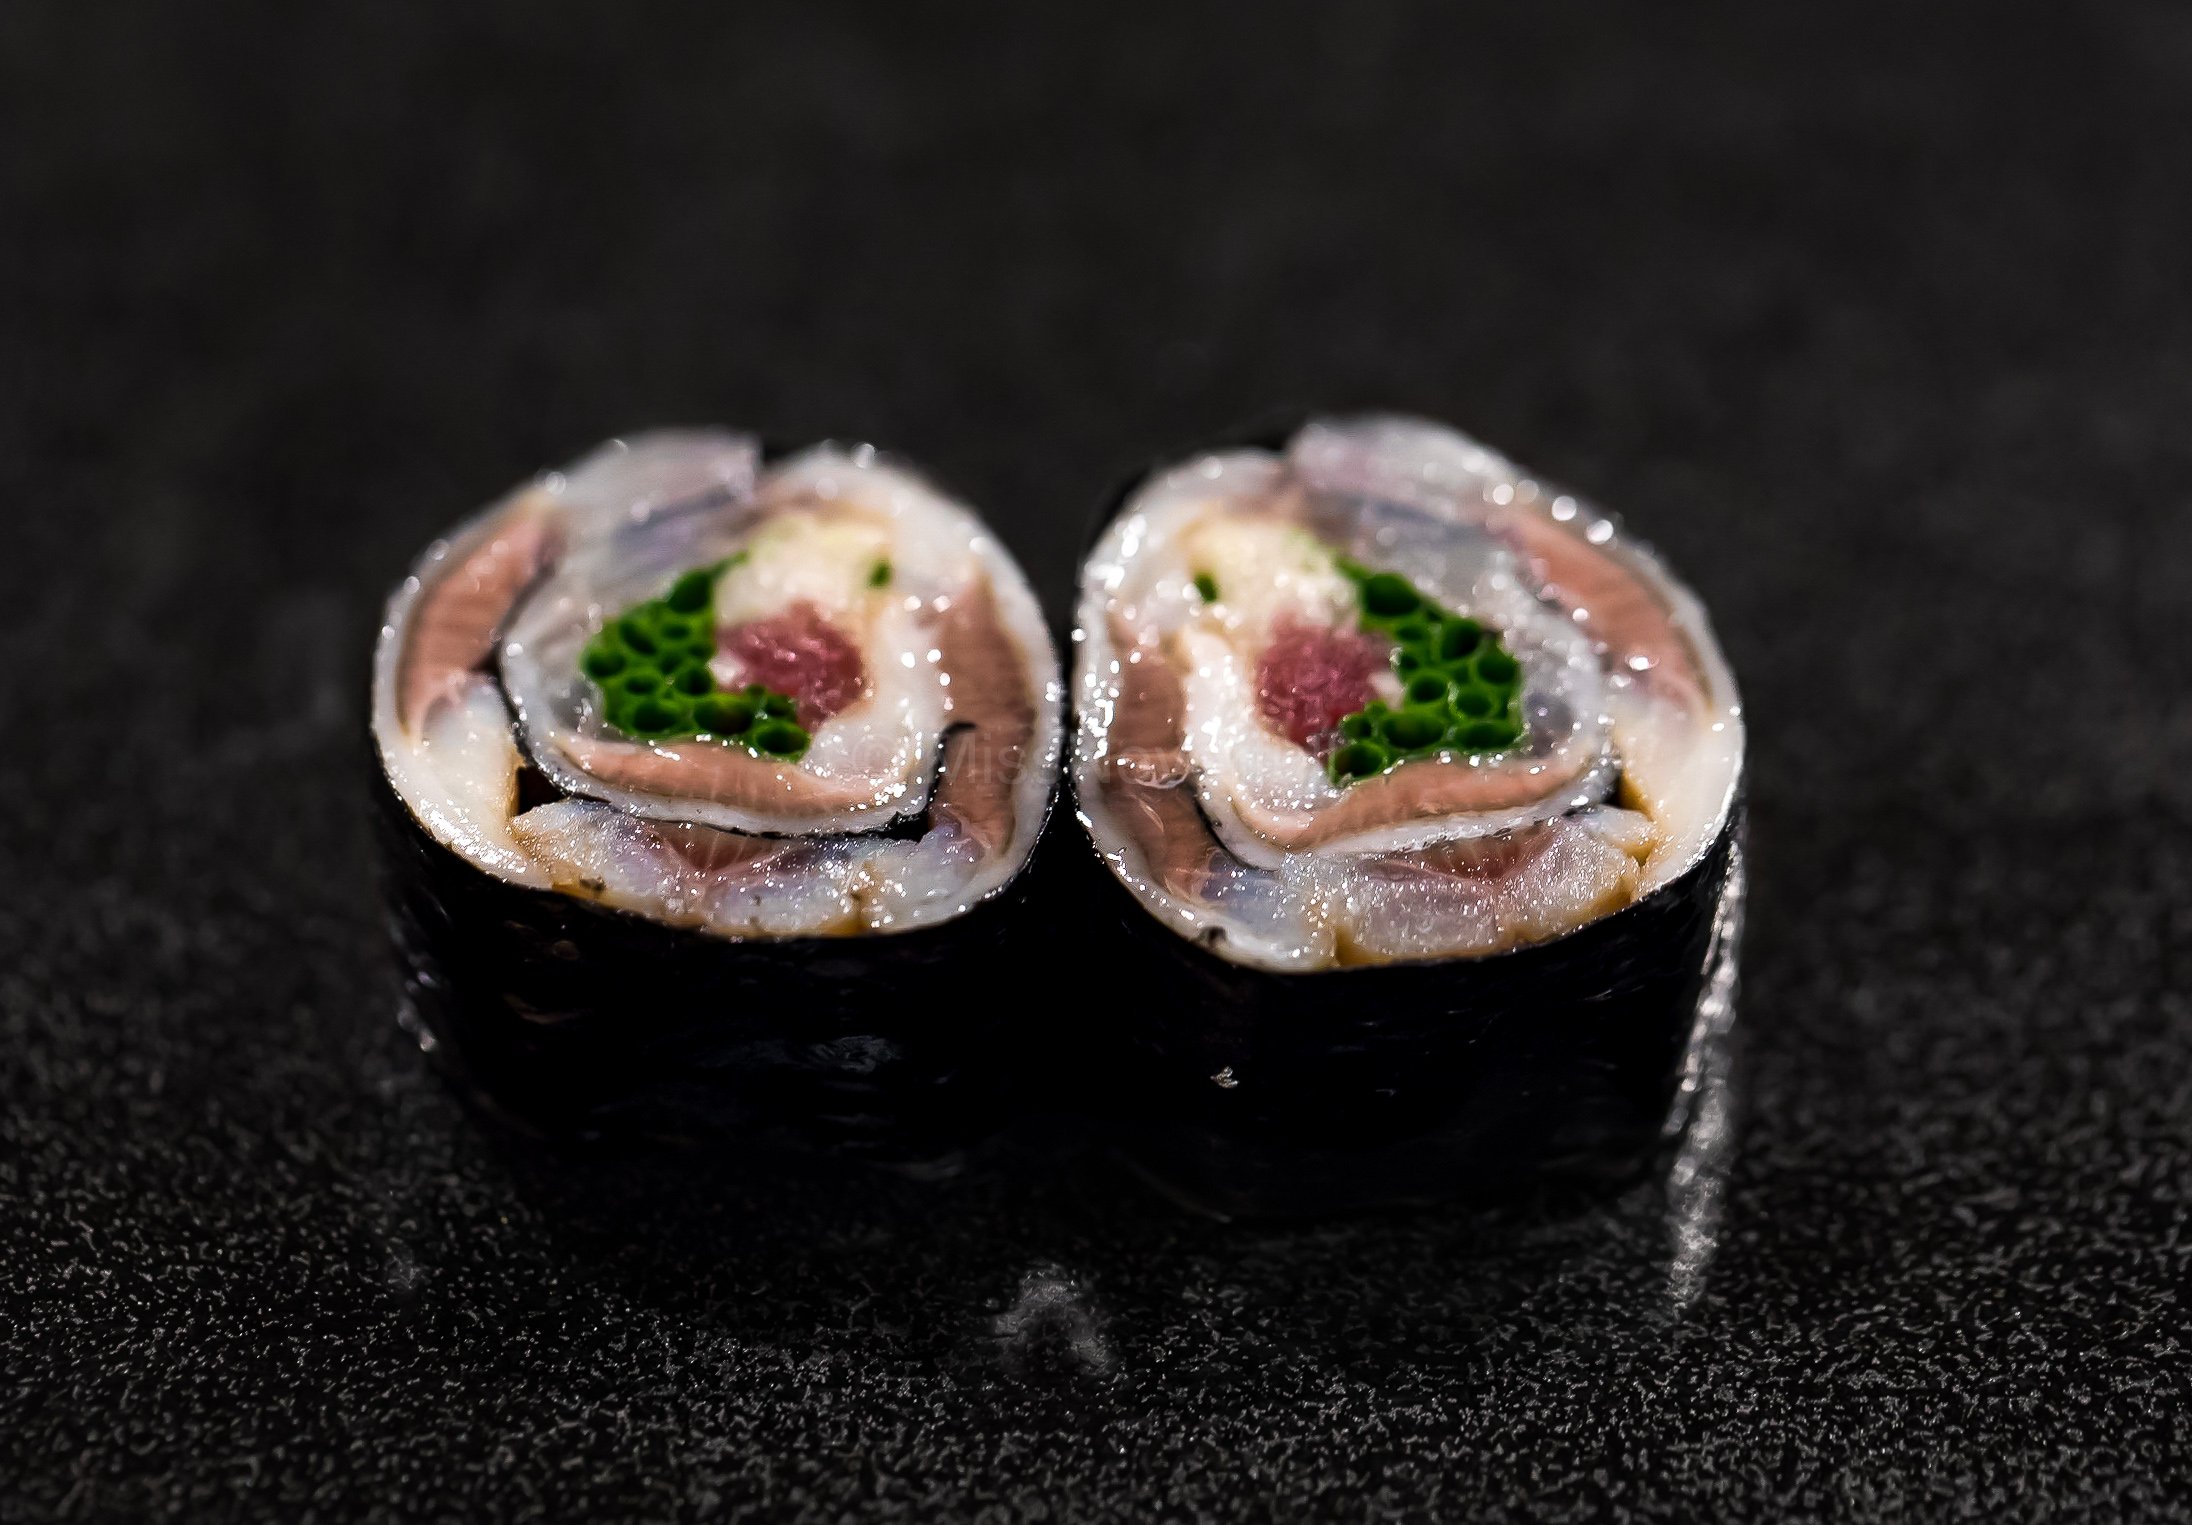 4. Iwashi maki (with gari, myoga and oba leaf)